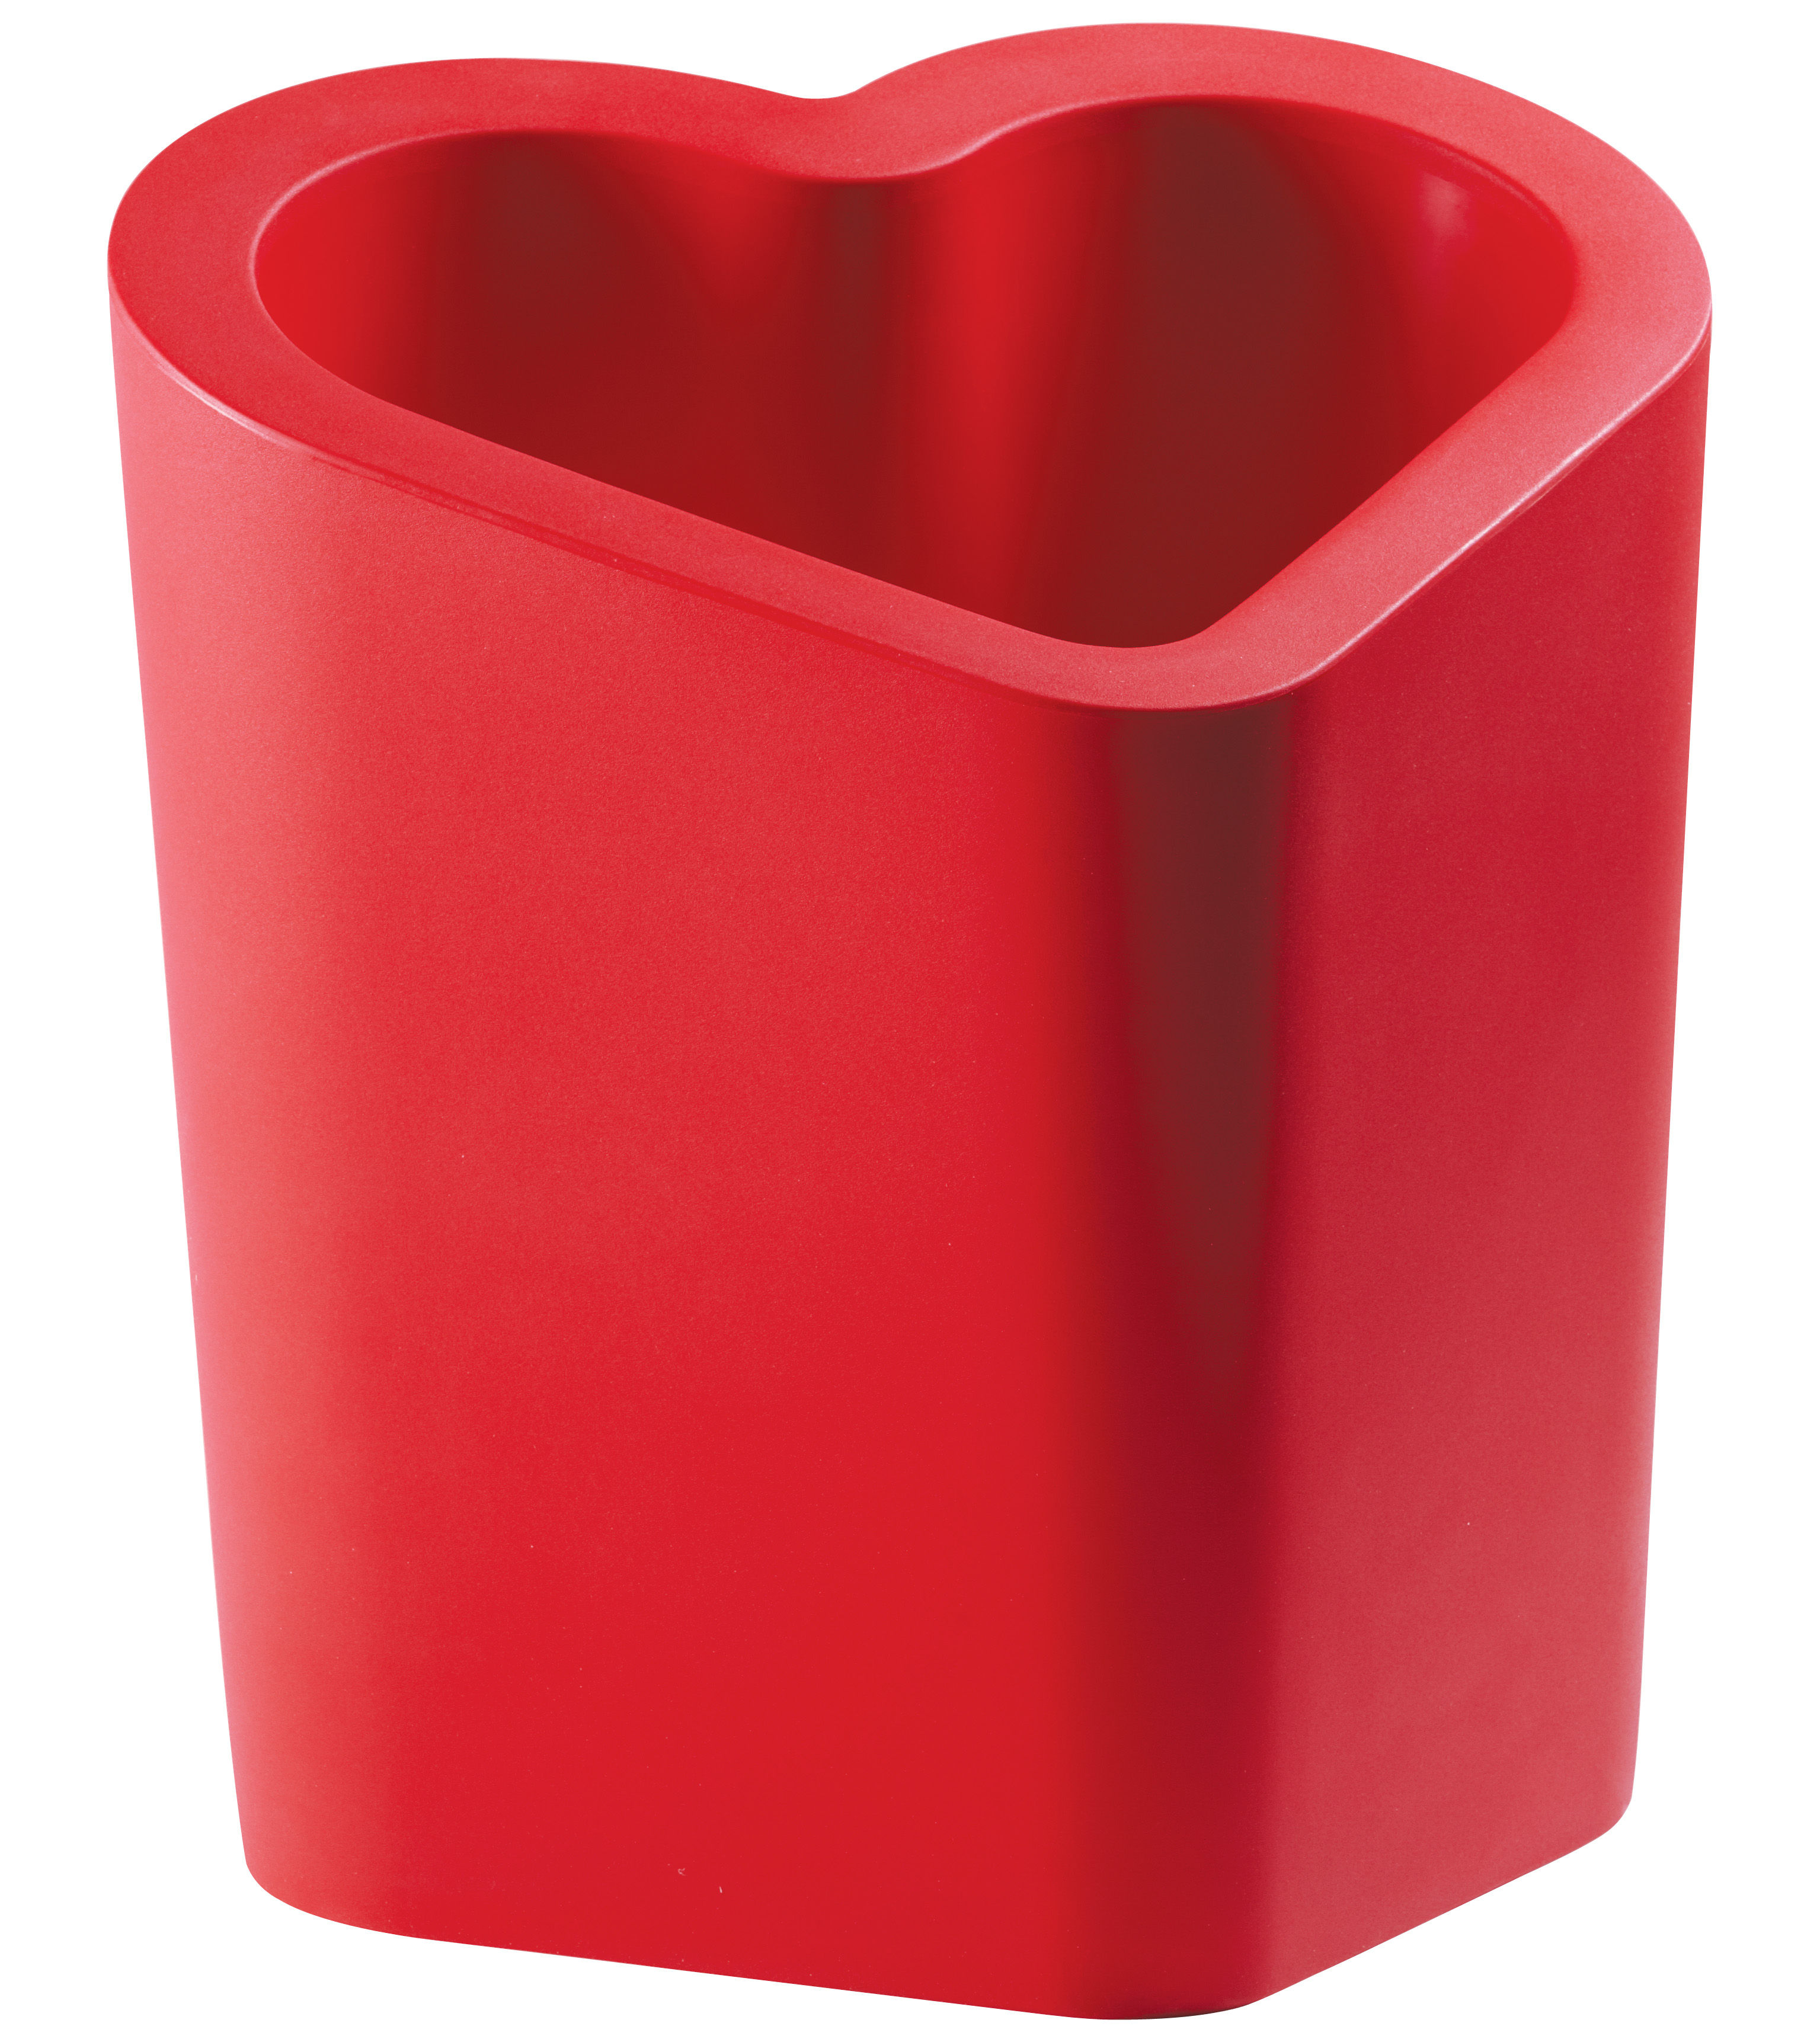 Outdoor - Pots & Plants - Mon Amour Flowerpot - Pot by Slide - Red - recyclable polyethylene